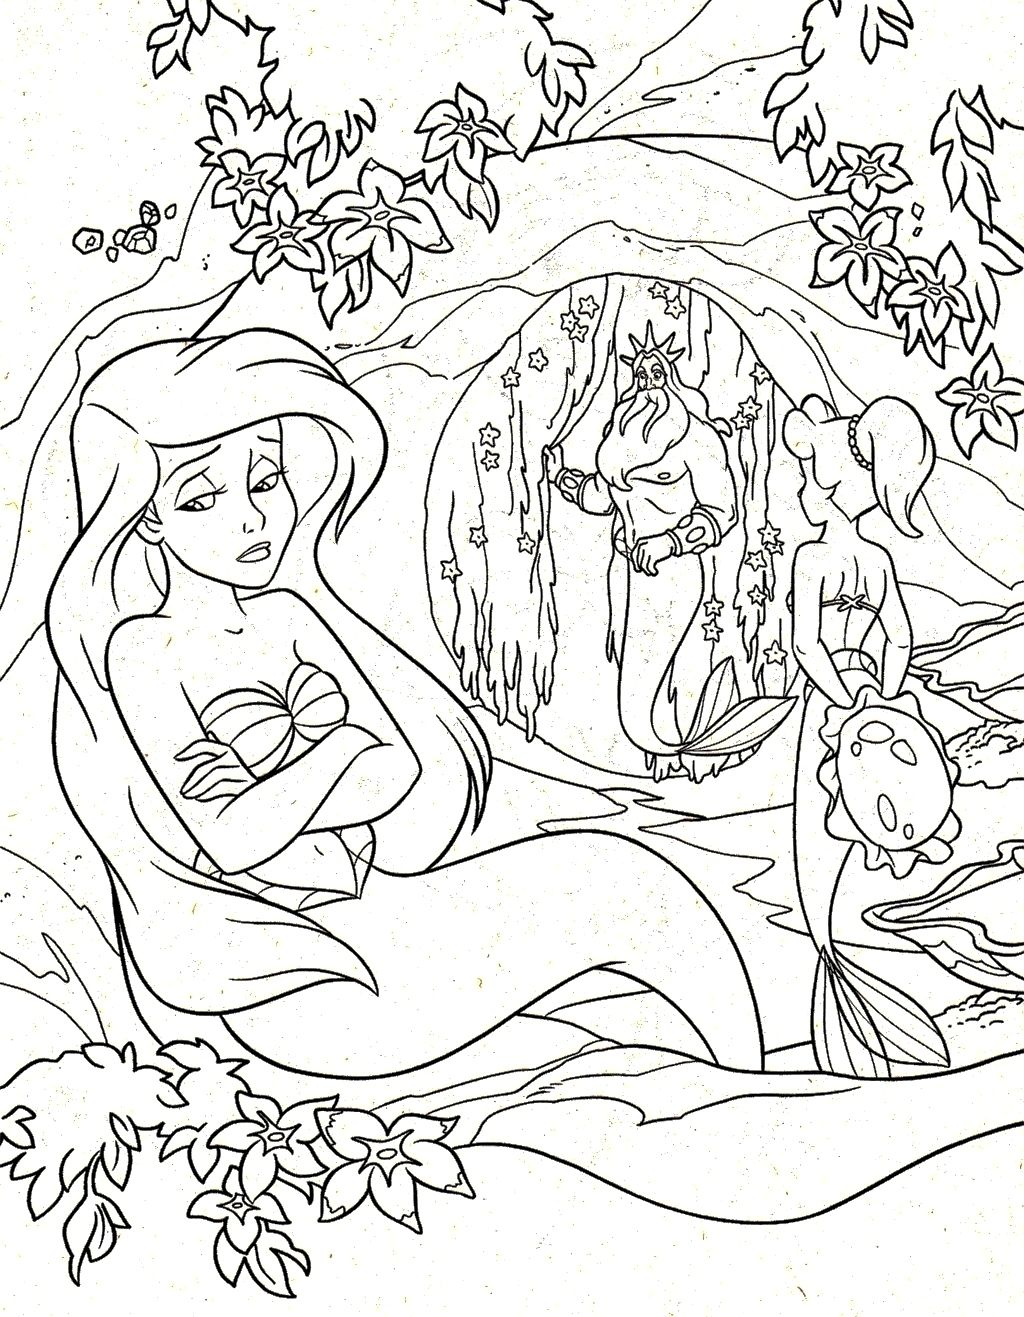 Princess Ariel Sad Coloring Page | Princess Ariel | Pinterest ...